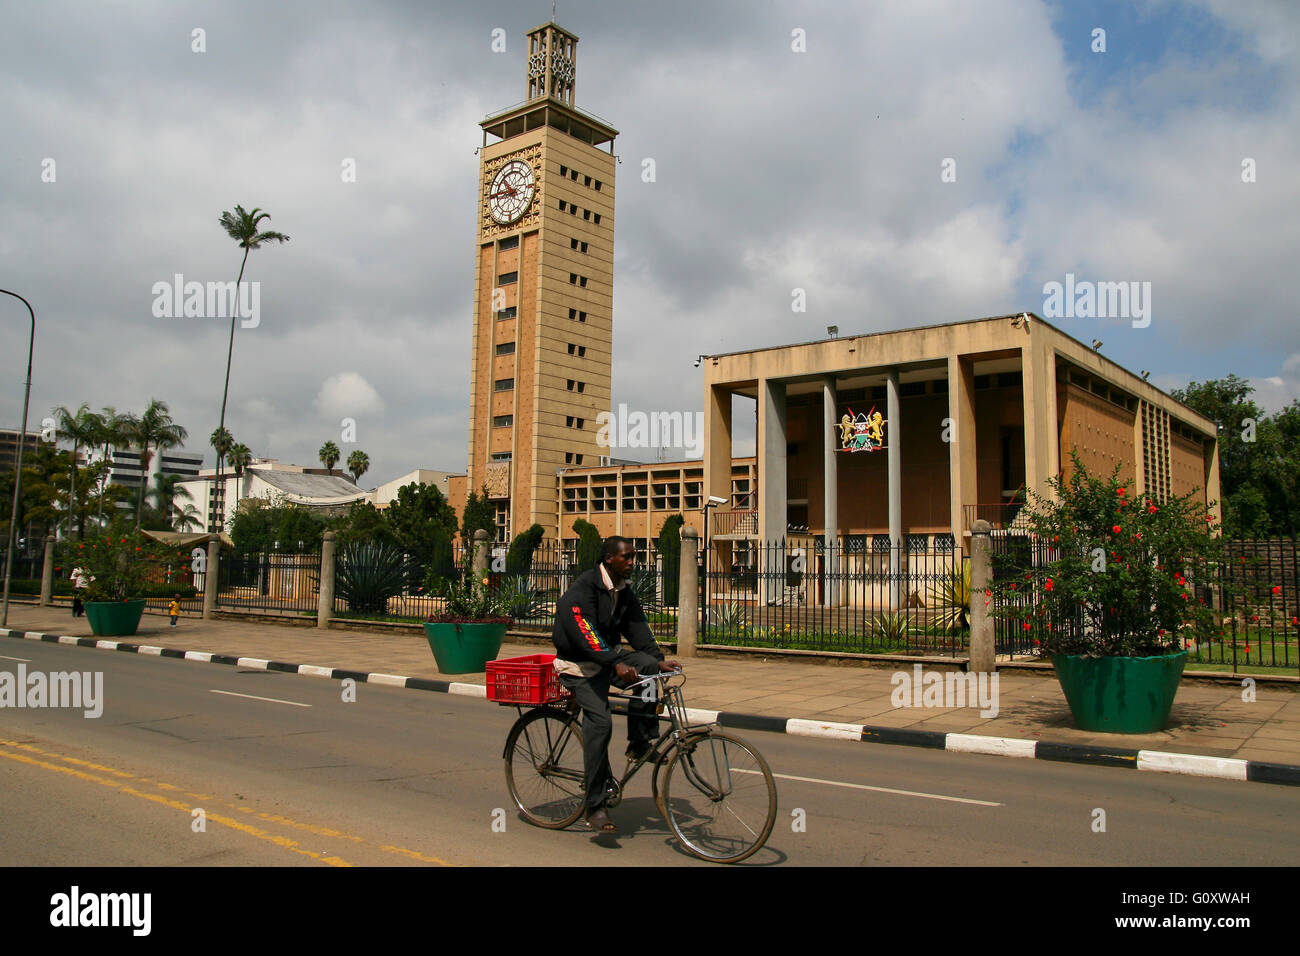 Kenyan man cycling in a bike at the center of Nairobi, with a christian church in the background - Stock Image